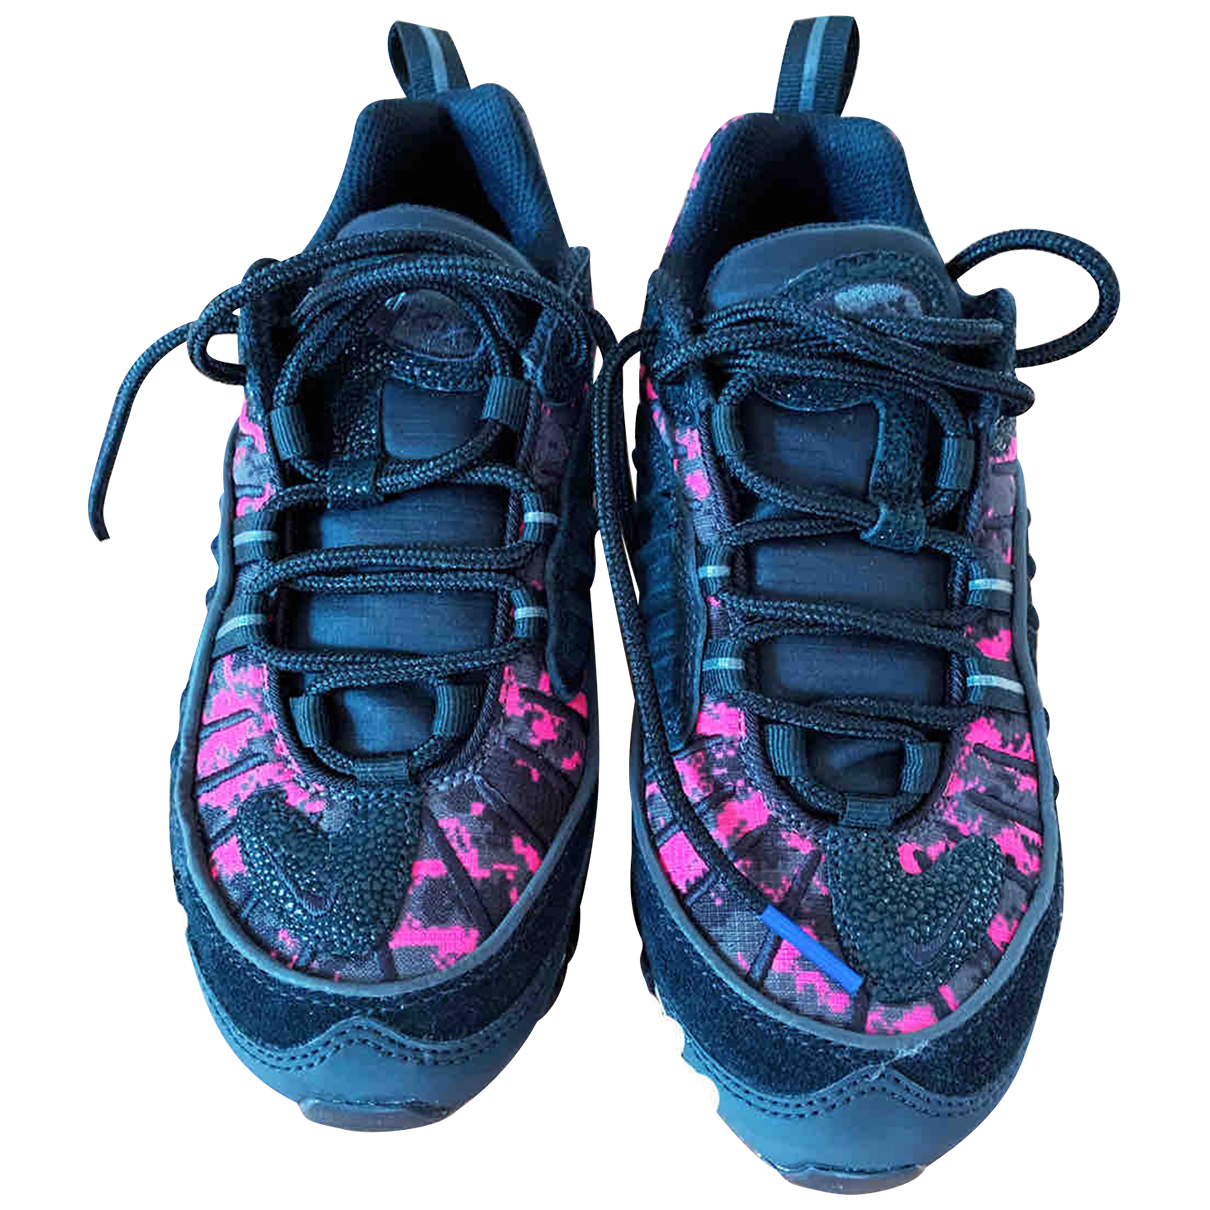 Nike Air Max 98 Multicolour Trainers for Women 36.5 EU